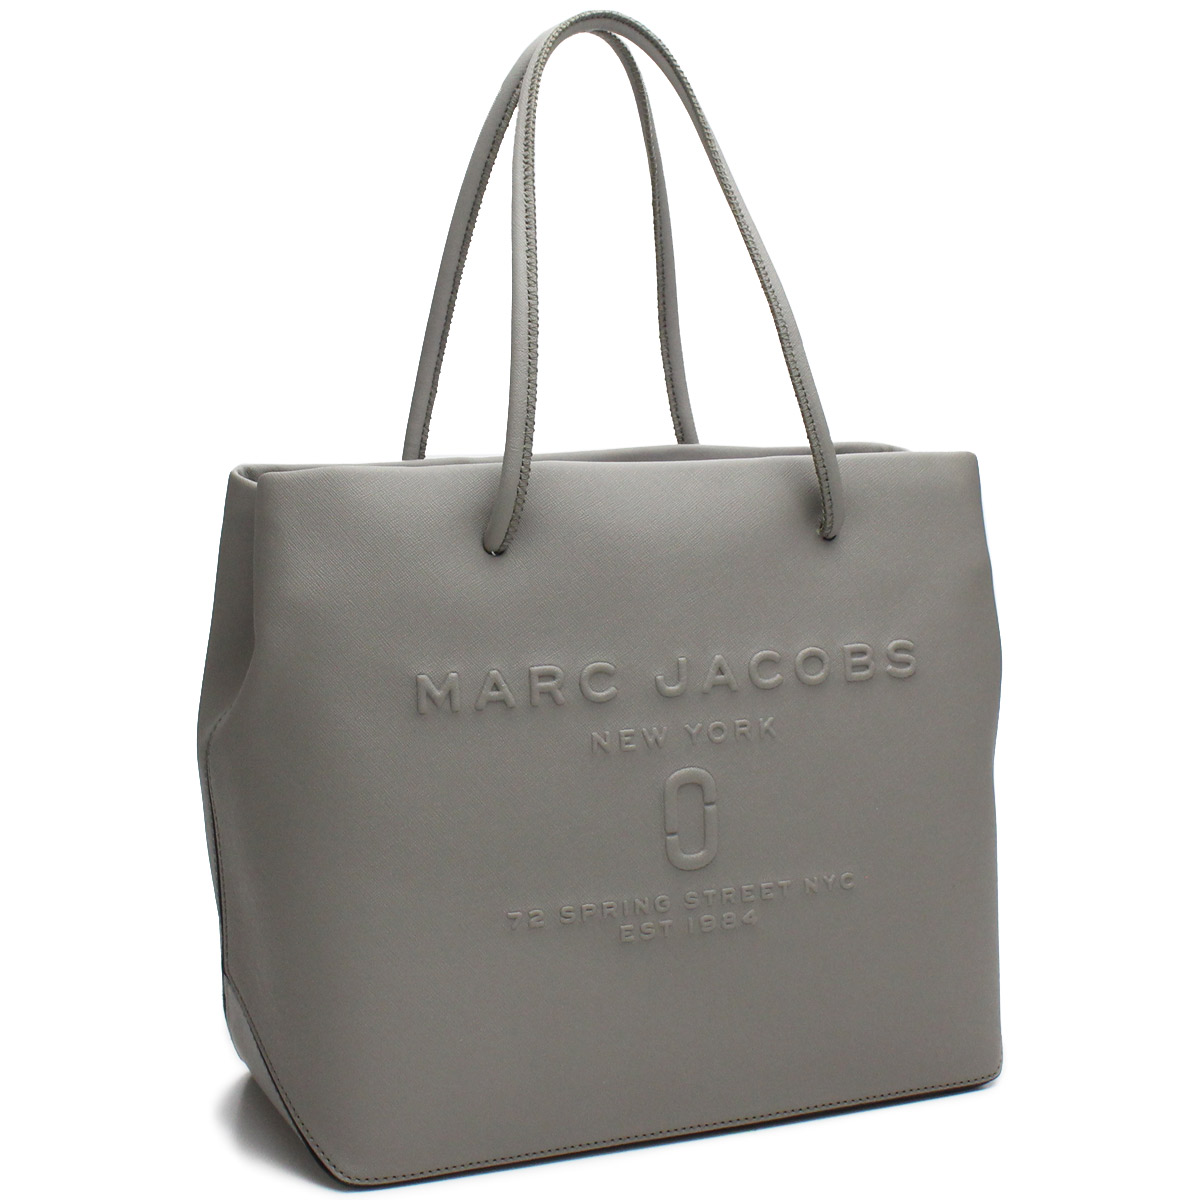 4a62aa12350e6 Bighit The total brand wholesale  Mark Jacobs MARC JACOBS bag LOGO SHOPPER  logo shopper tote bag M0011046 027 STONE GREY gray system